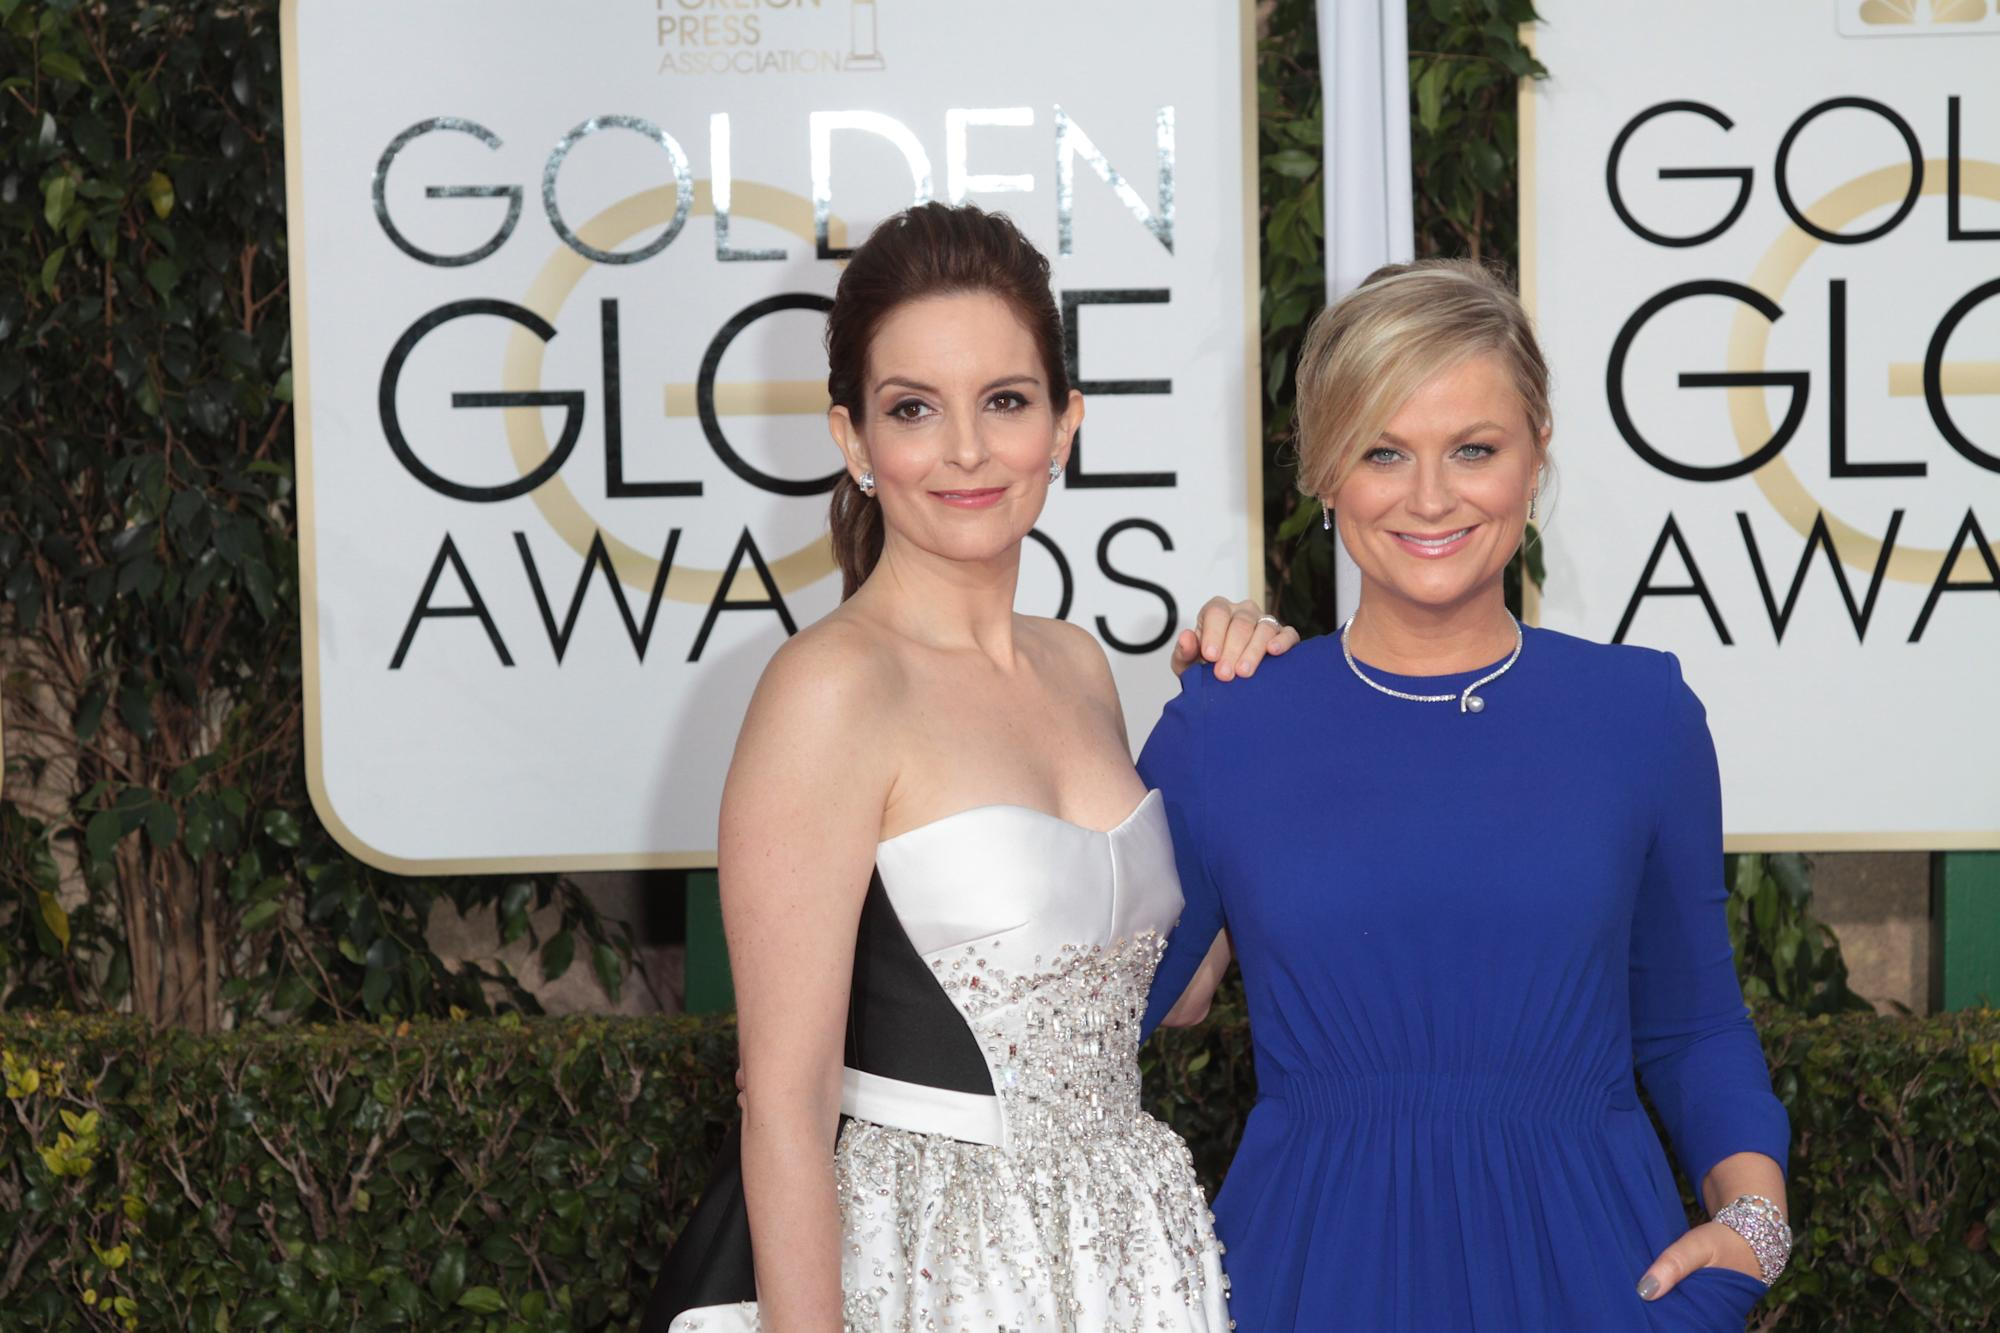 How to watch the Golden Globes 2021 in the UK